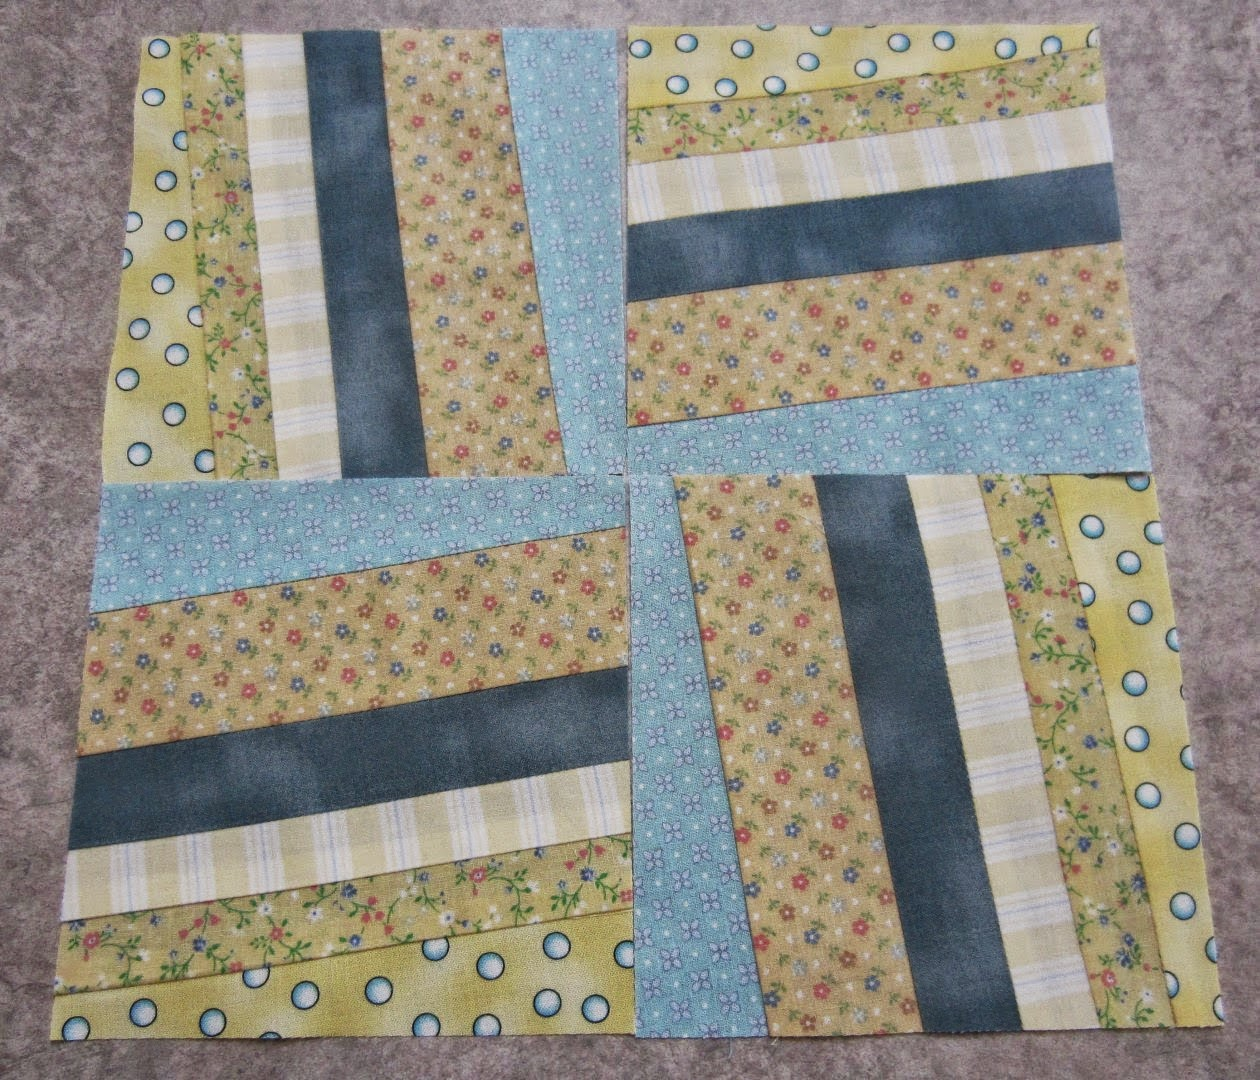 Quilt Patterns On Craftsy : Crafty Sewing & Quilting: Free Craftsy Quilt Patterns